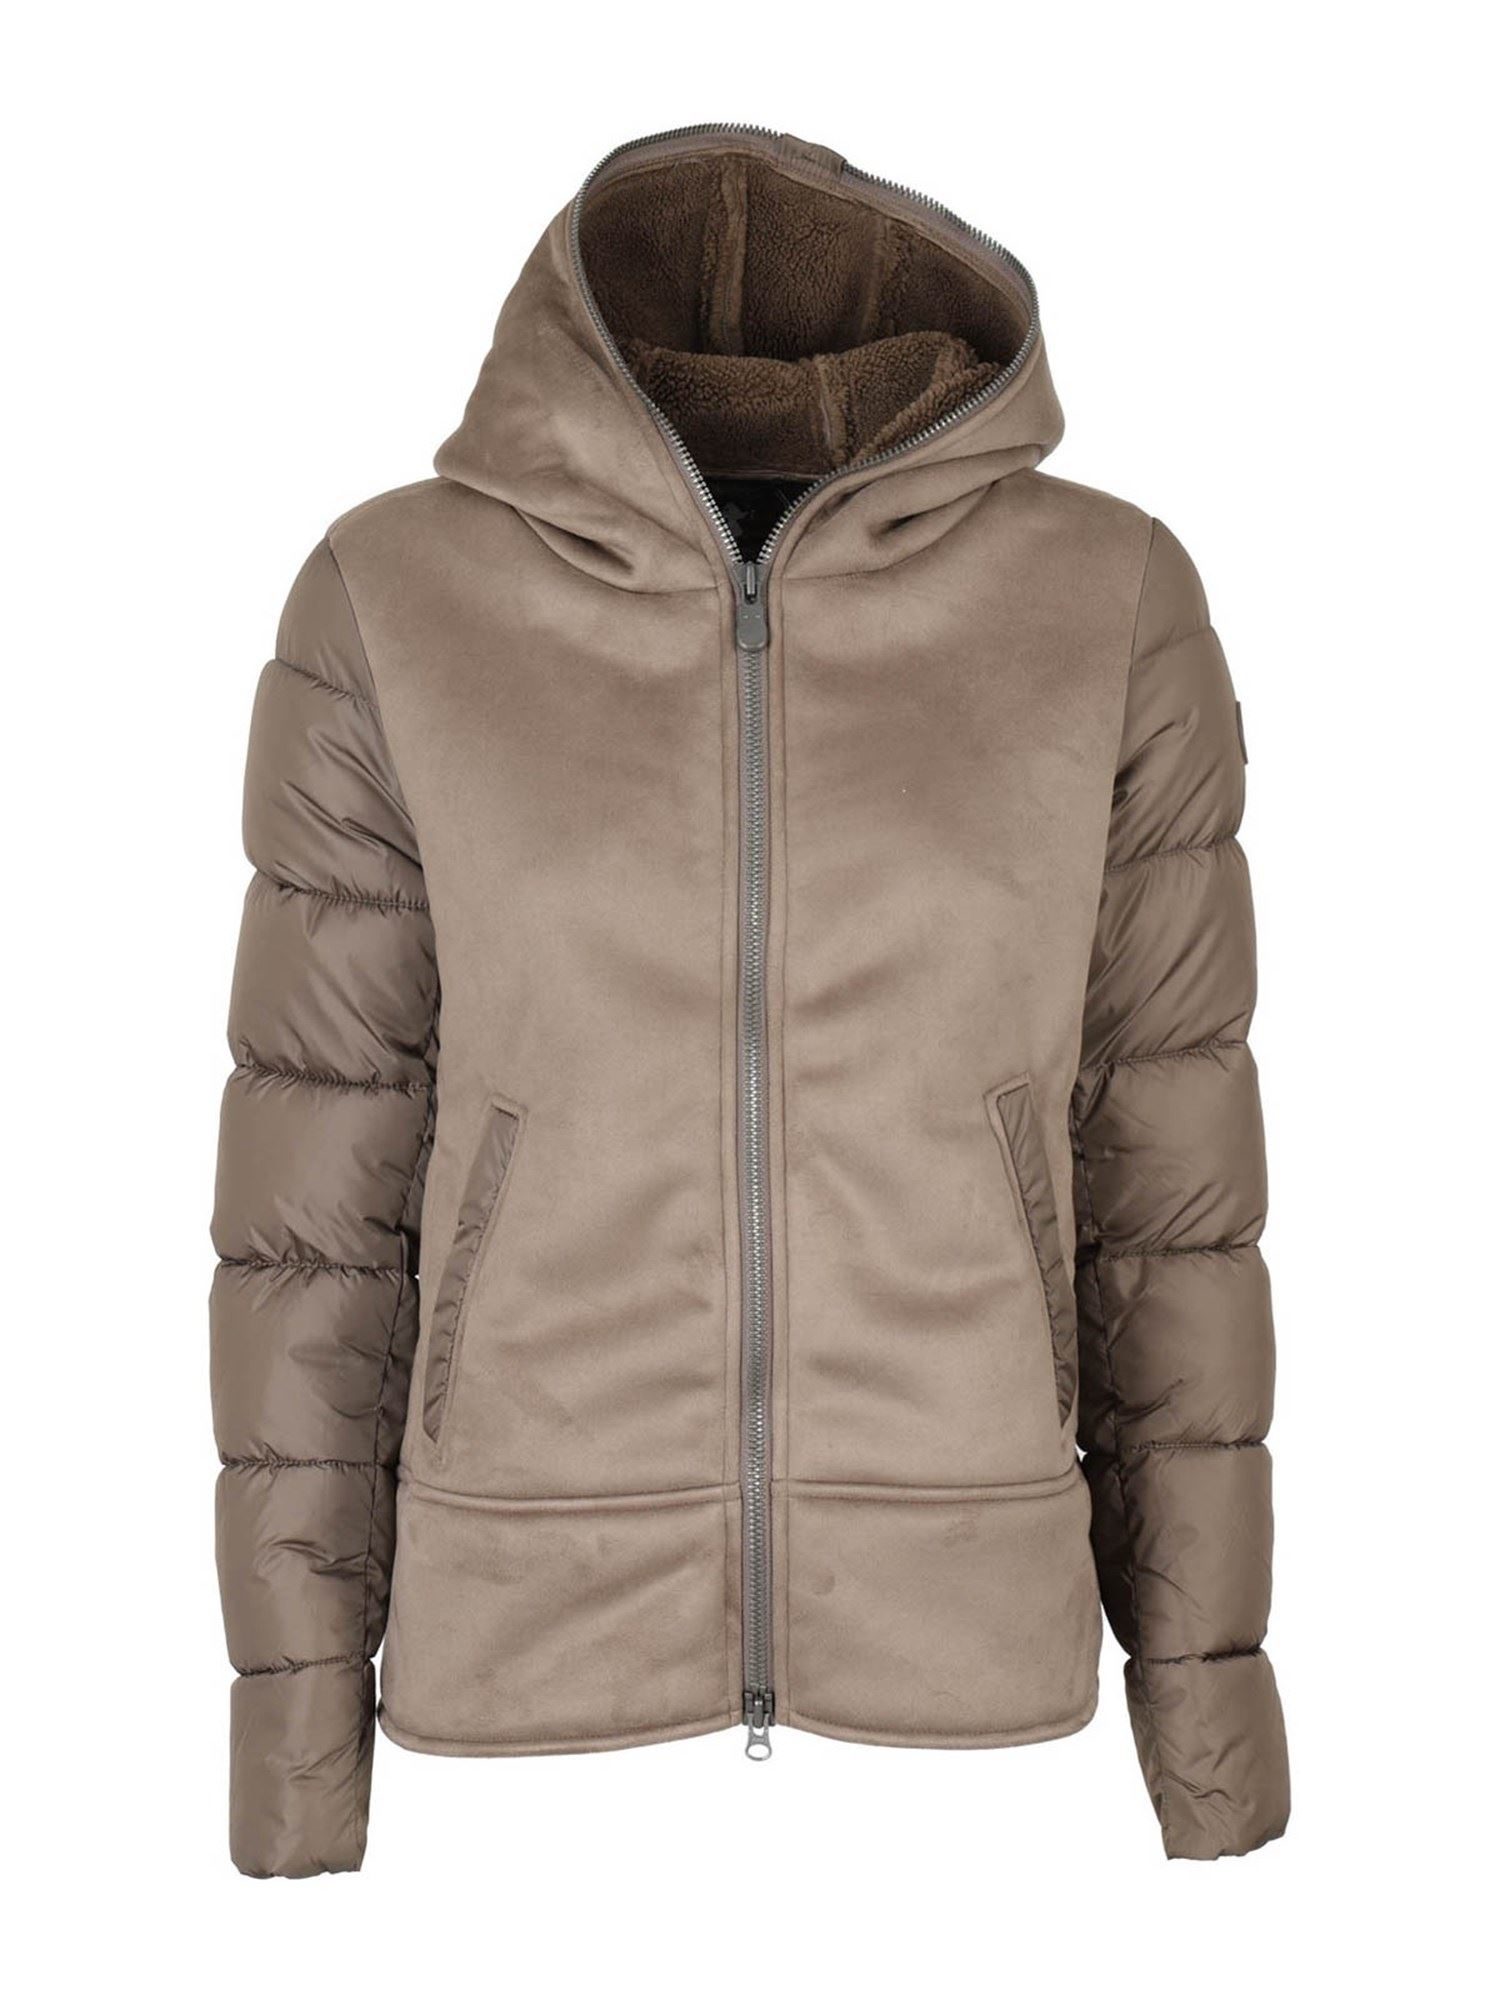 Save The Duck SYNTHETIC SHEARLING PUFFER JACKET